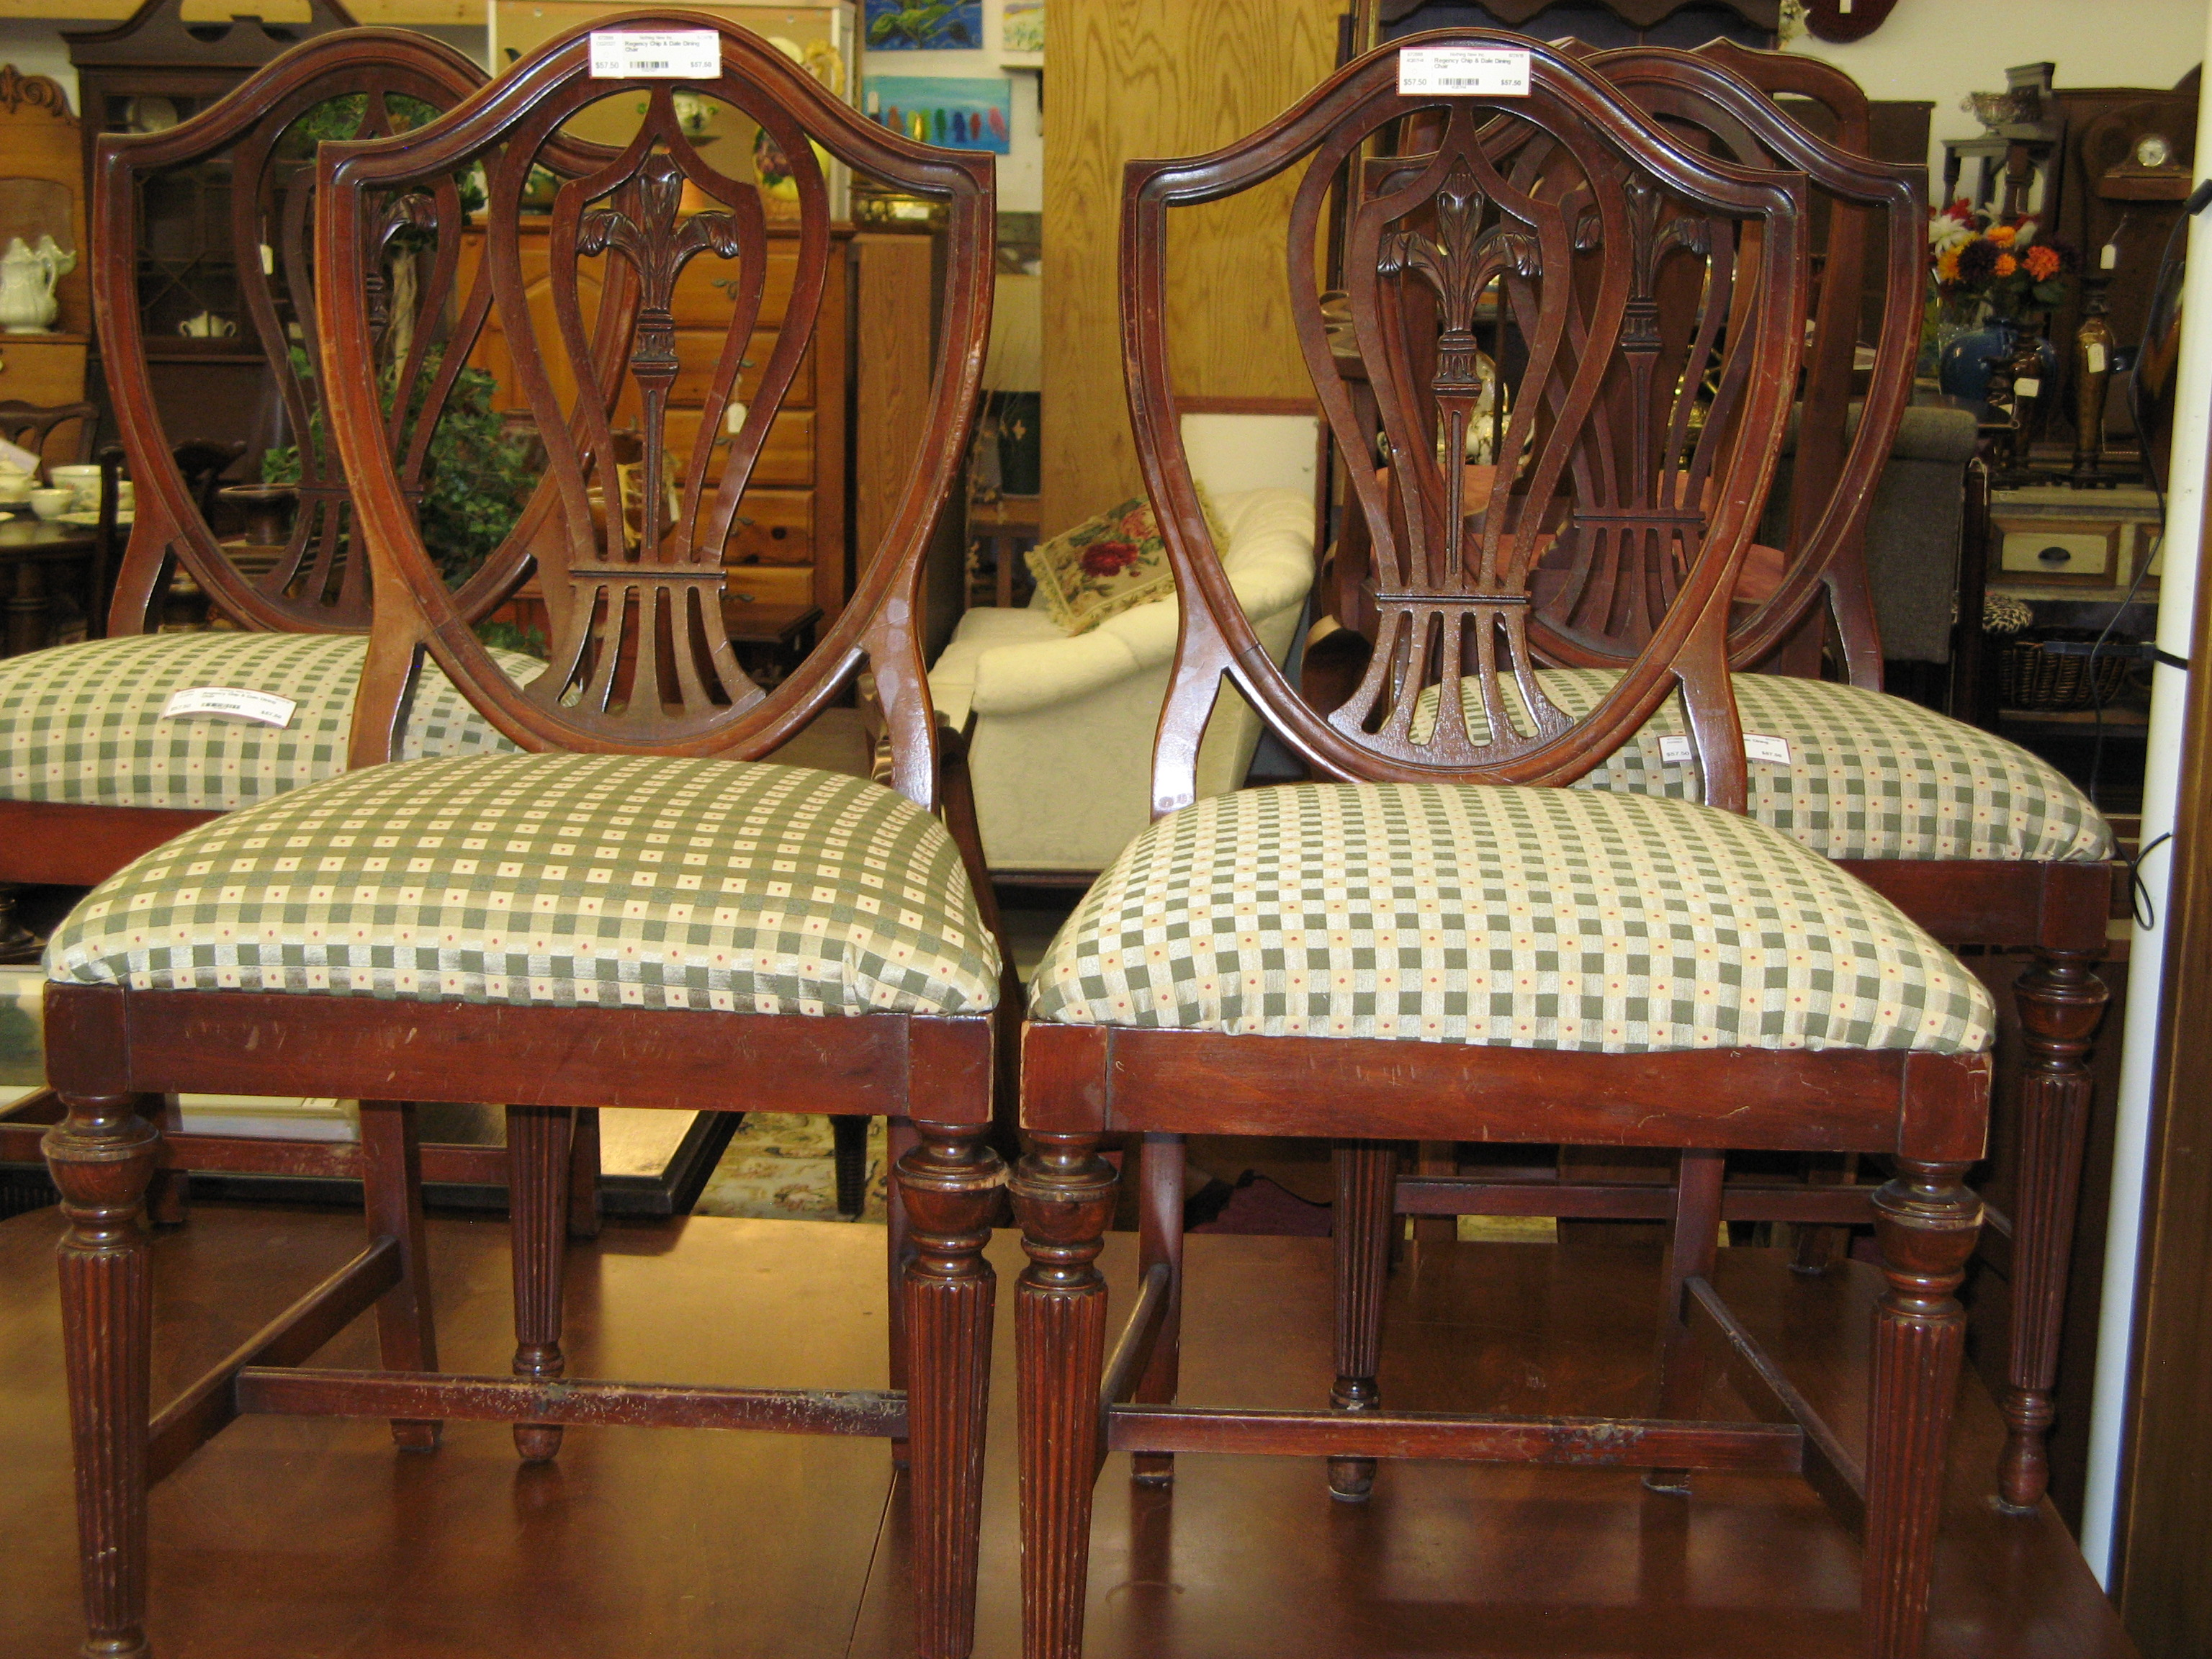 Regency Chippendale Dining Chair w/ Green Check Upholstered Seat